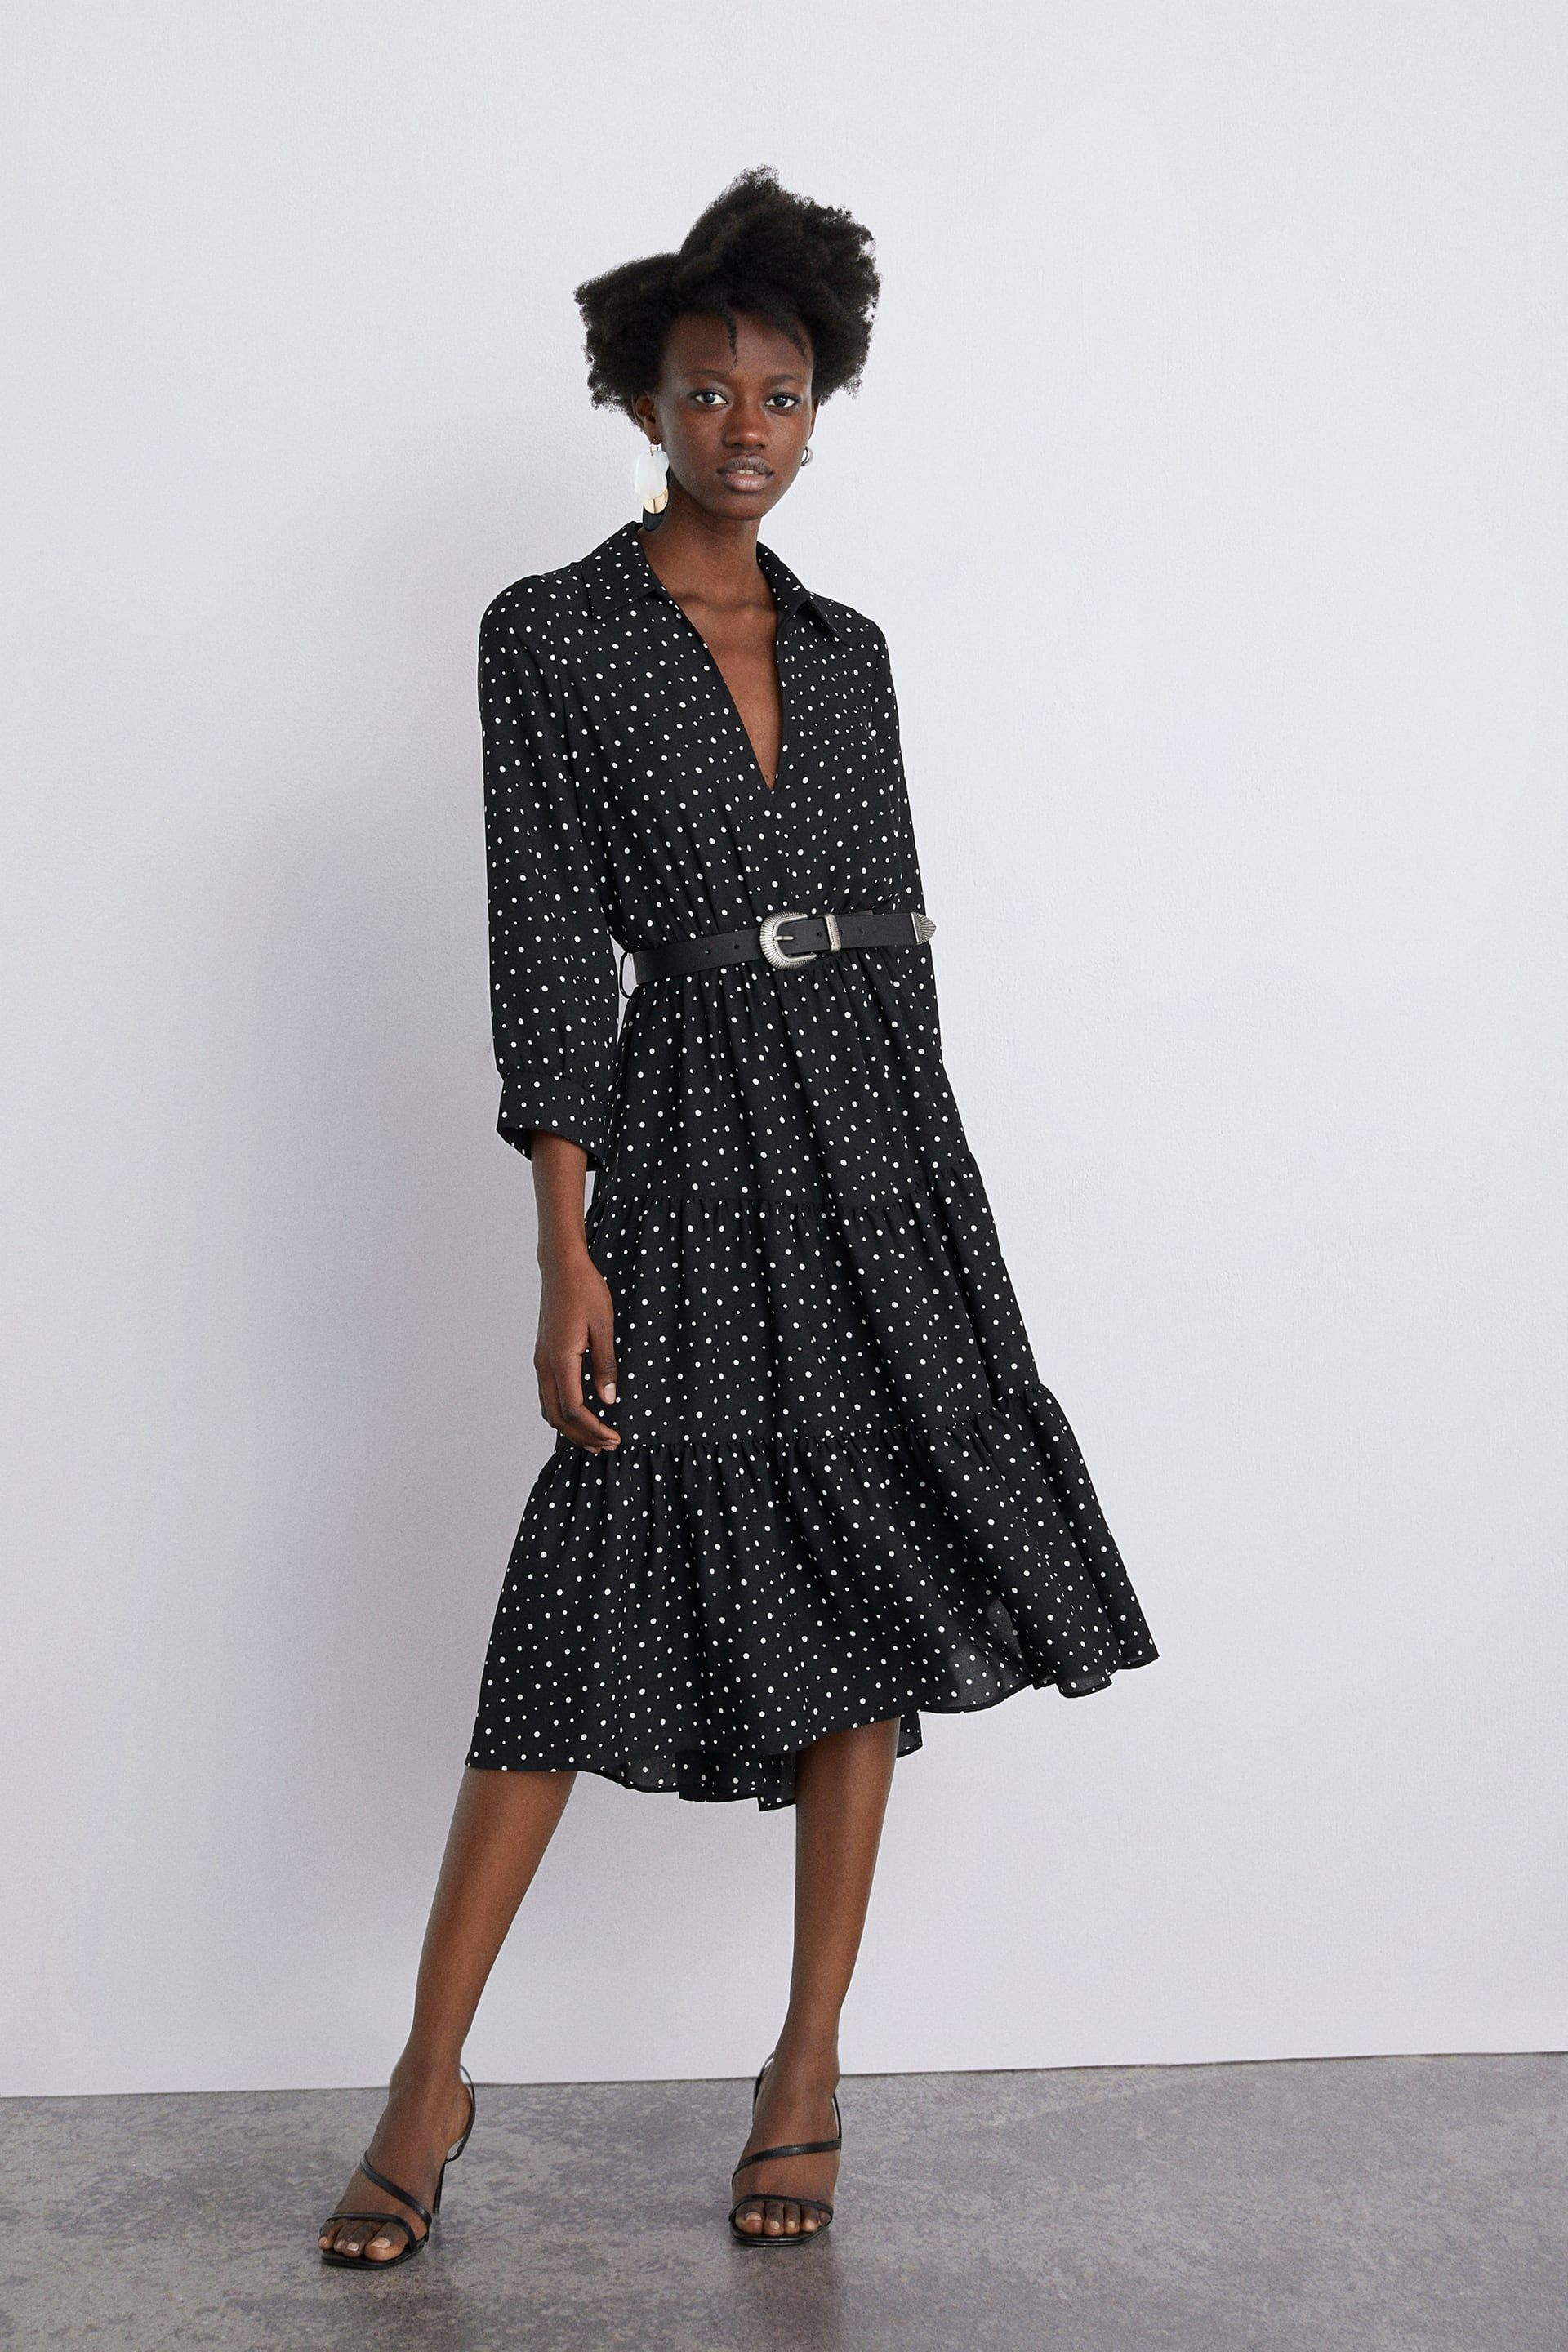 687f68c8b23 Polka dot belt dress in 2019 | Wishlist | Black polka dot dress, Dot ...